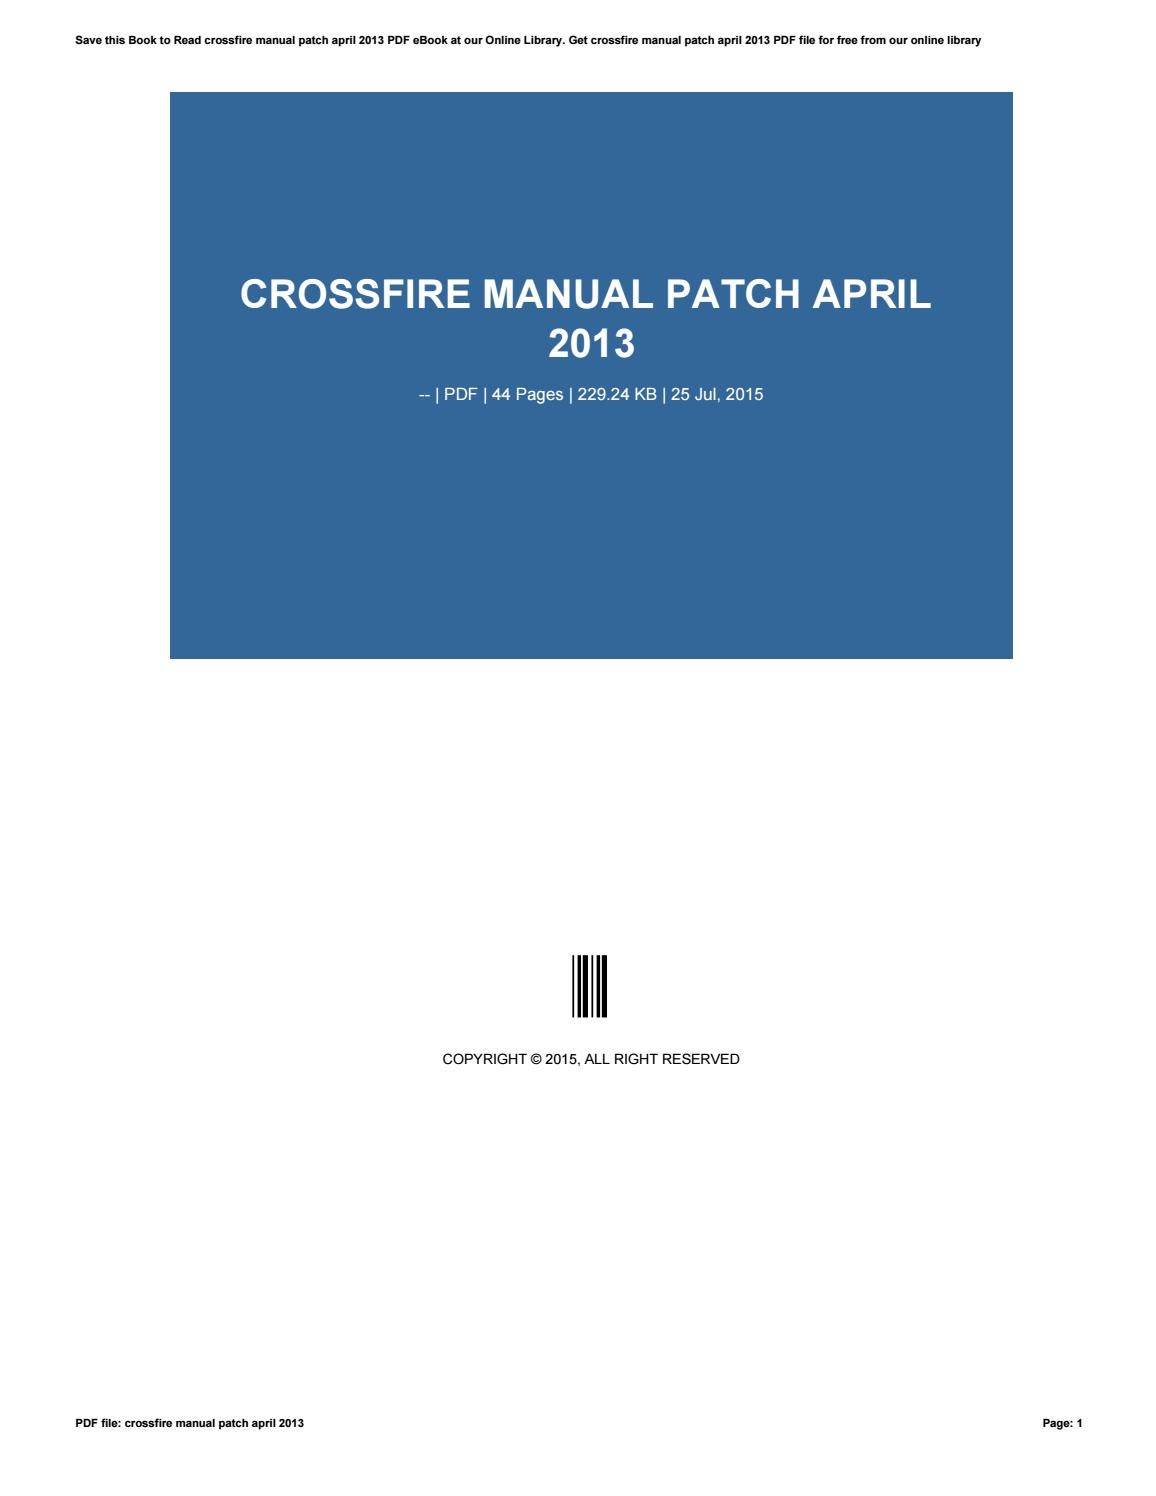 how to use crossfire manual patch